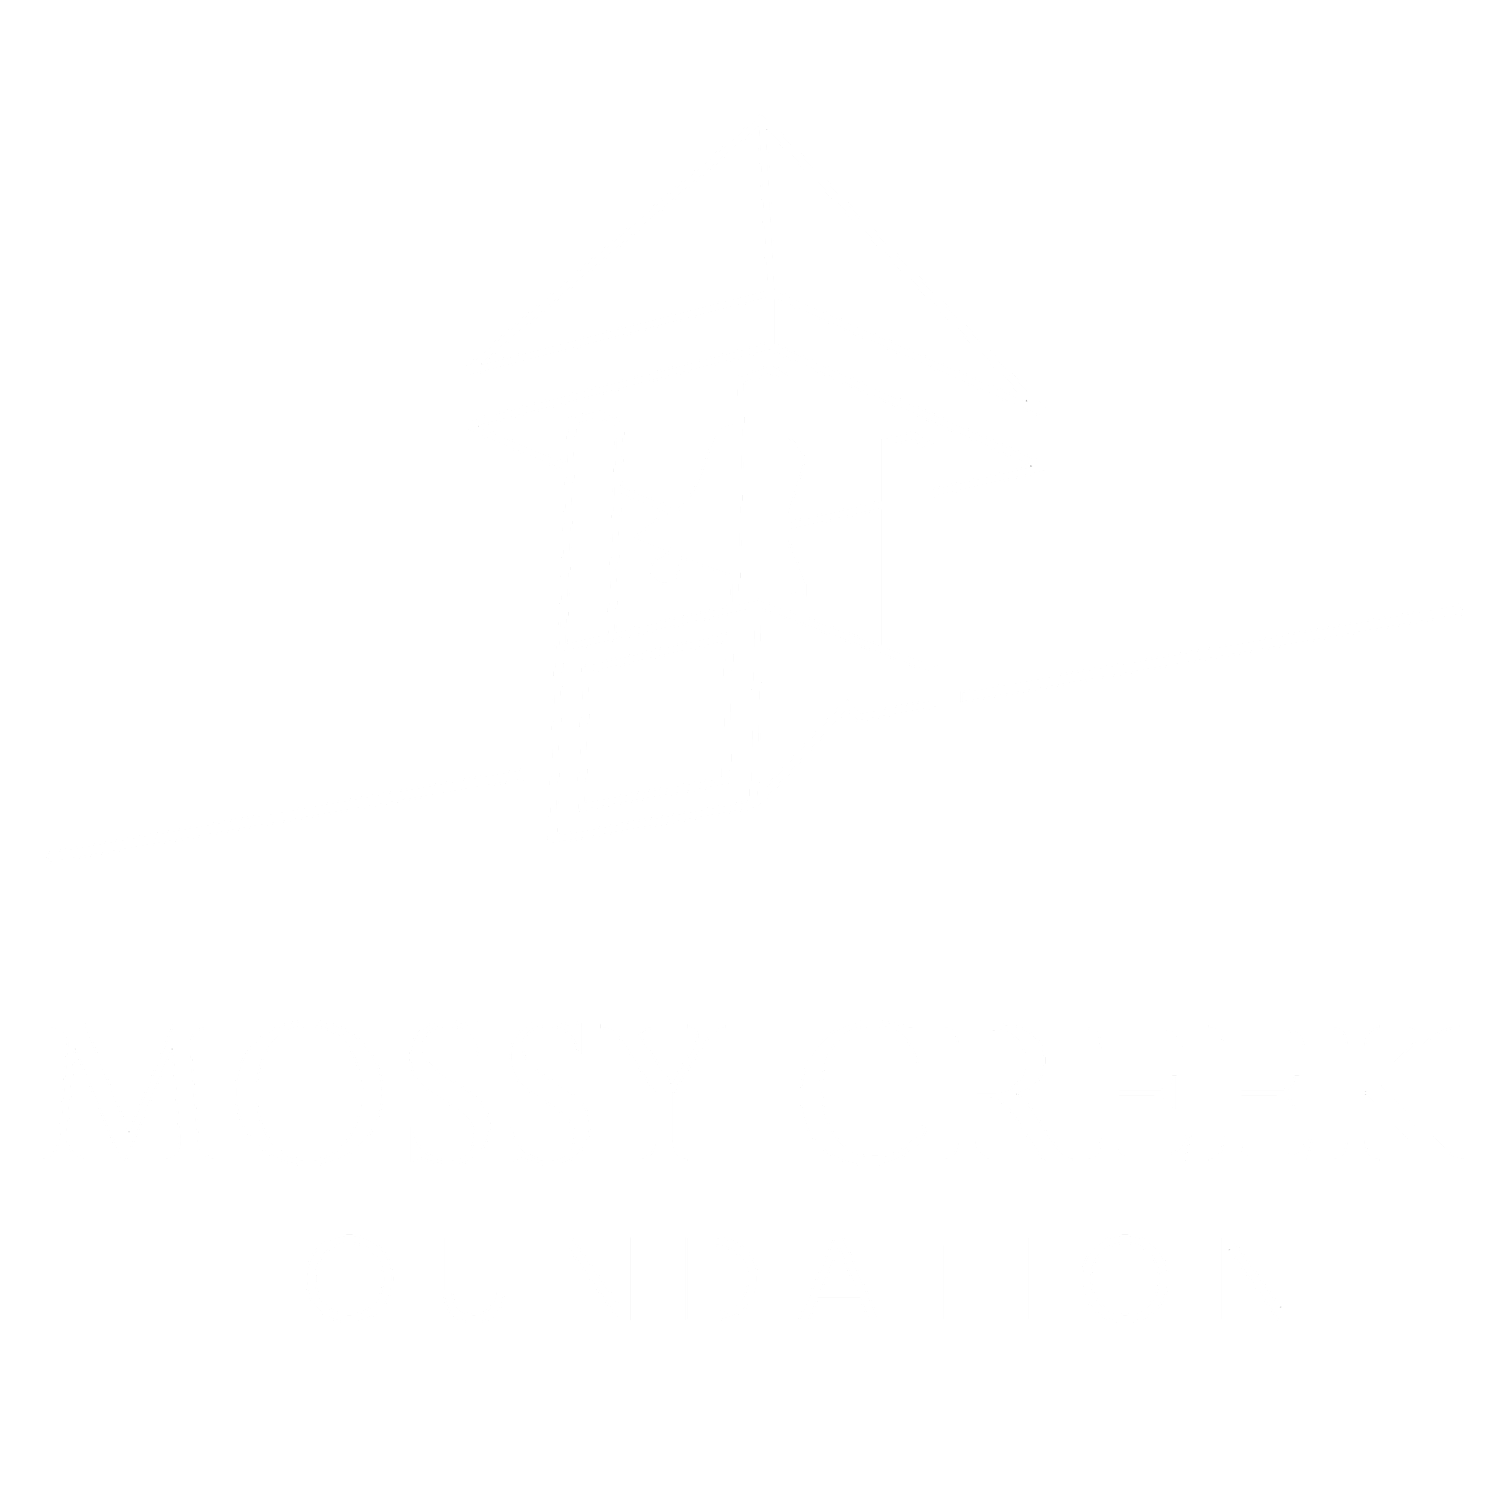 Mossy Creek Foundation